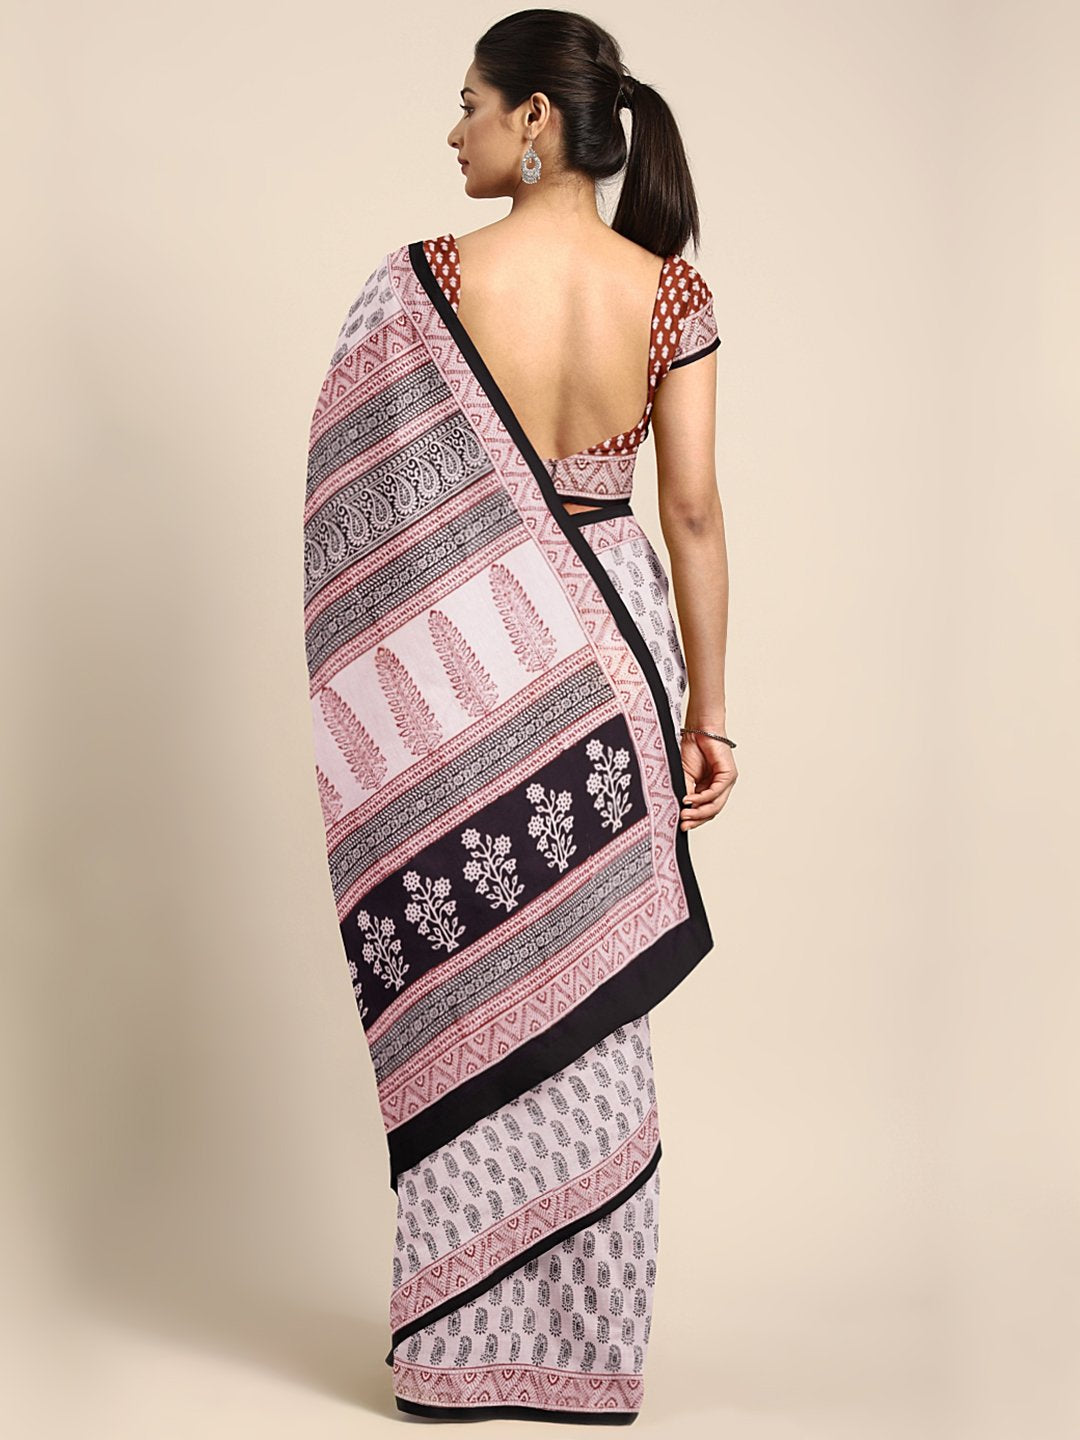 Off-White Black Handblock Print Saree-Saree-Kalakari India-MYBASA0013-Bagh, Cotton, Geographical Indication, Hand Blocks, Hand Crafted, Heritage Prints, Natural Dyes, Sarees, Sustainable Fabrics-[Linen,Ethnic,wear,Fashionista,Handloom,Handicraft,Indigo,blockprint,block,print,Cotton,Chanderi,Blue, latest,classy,party,bollywood,trendy,summer,style,traditional,formal,elegant,unique,style,hand,block,print, dabu,booti,gift,present,glamorous,affordable,collectible,Sari,Saree,printed, holi, Diwali, bir